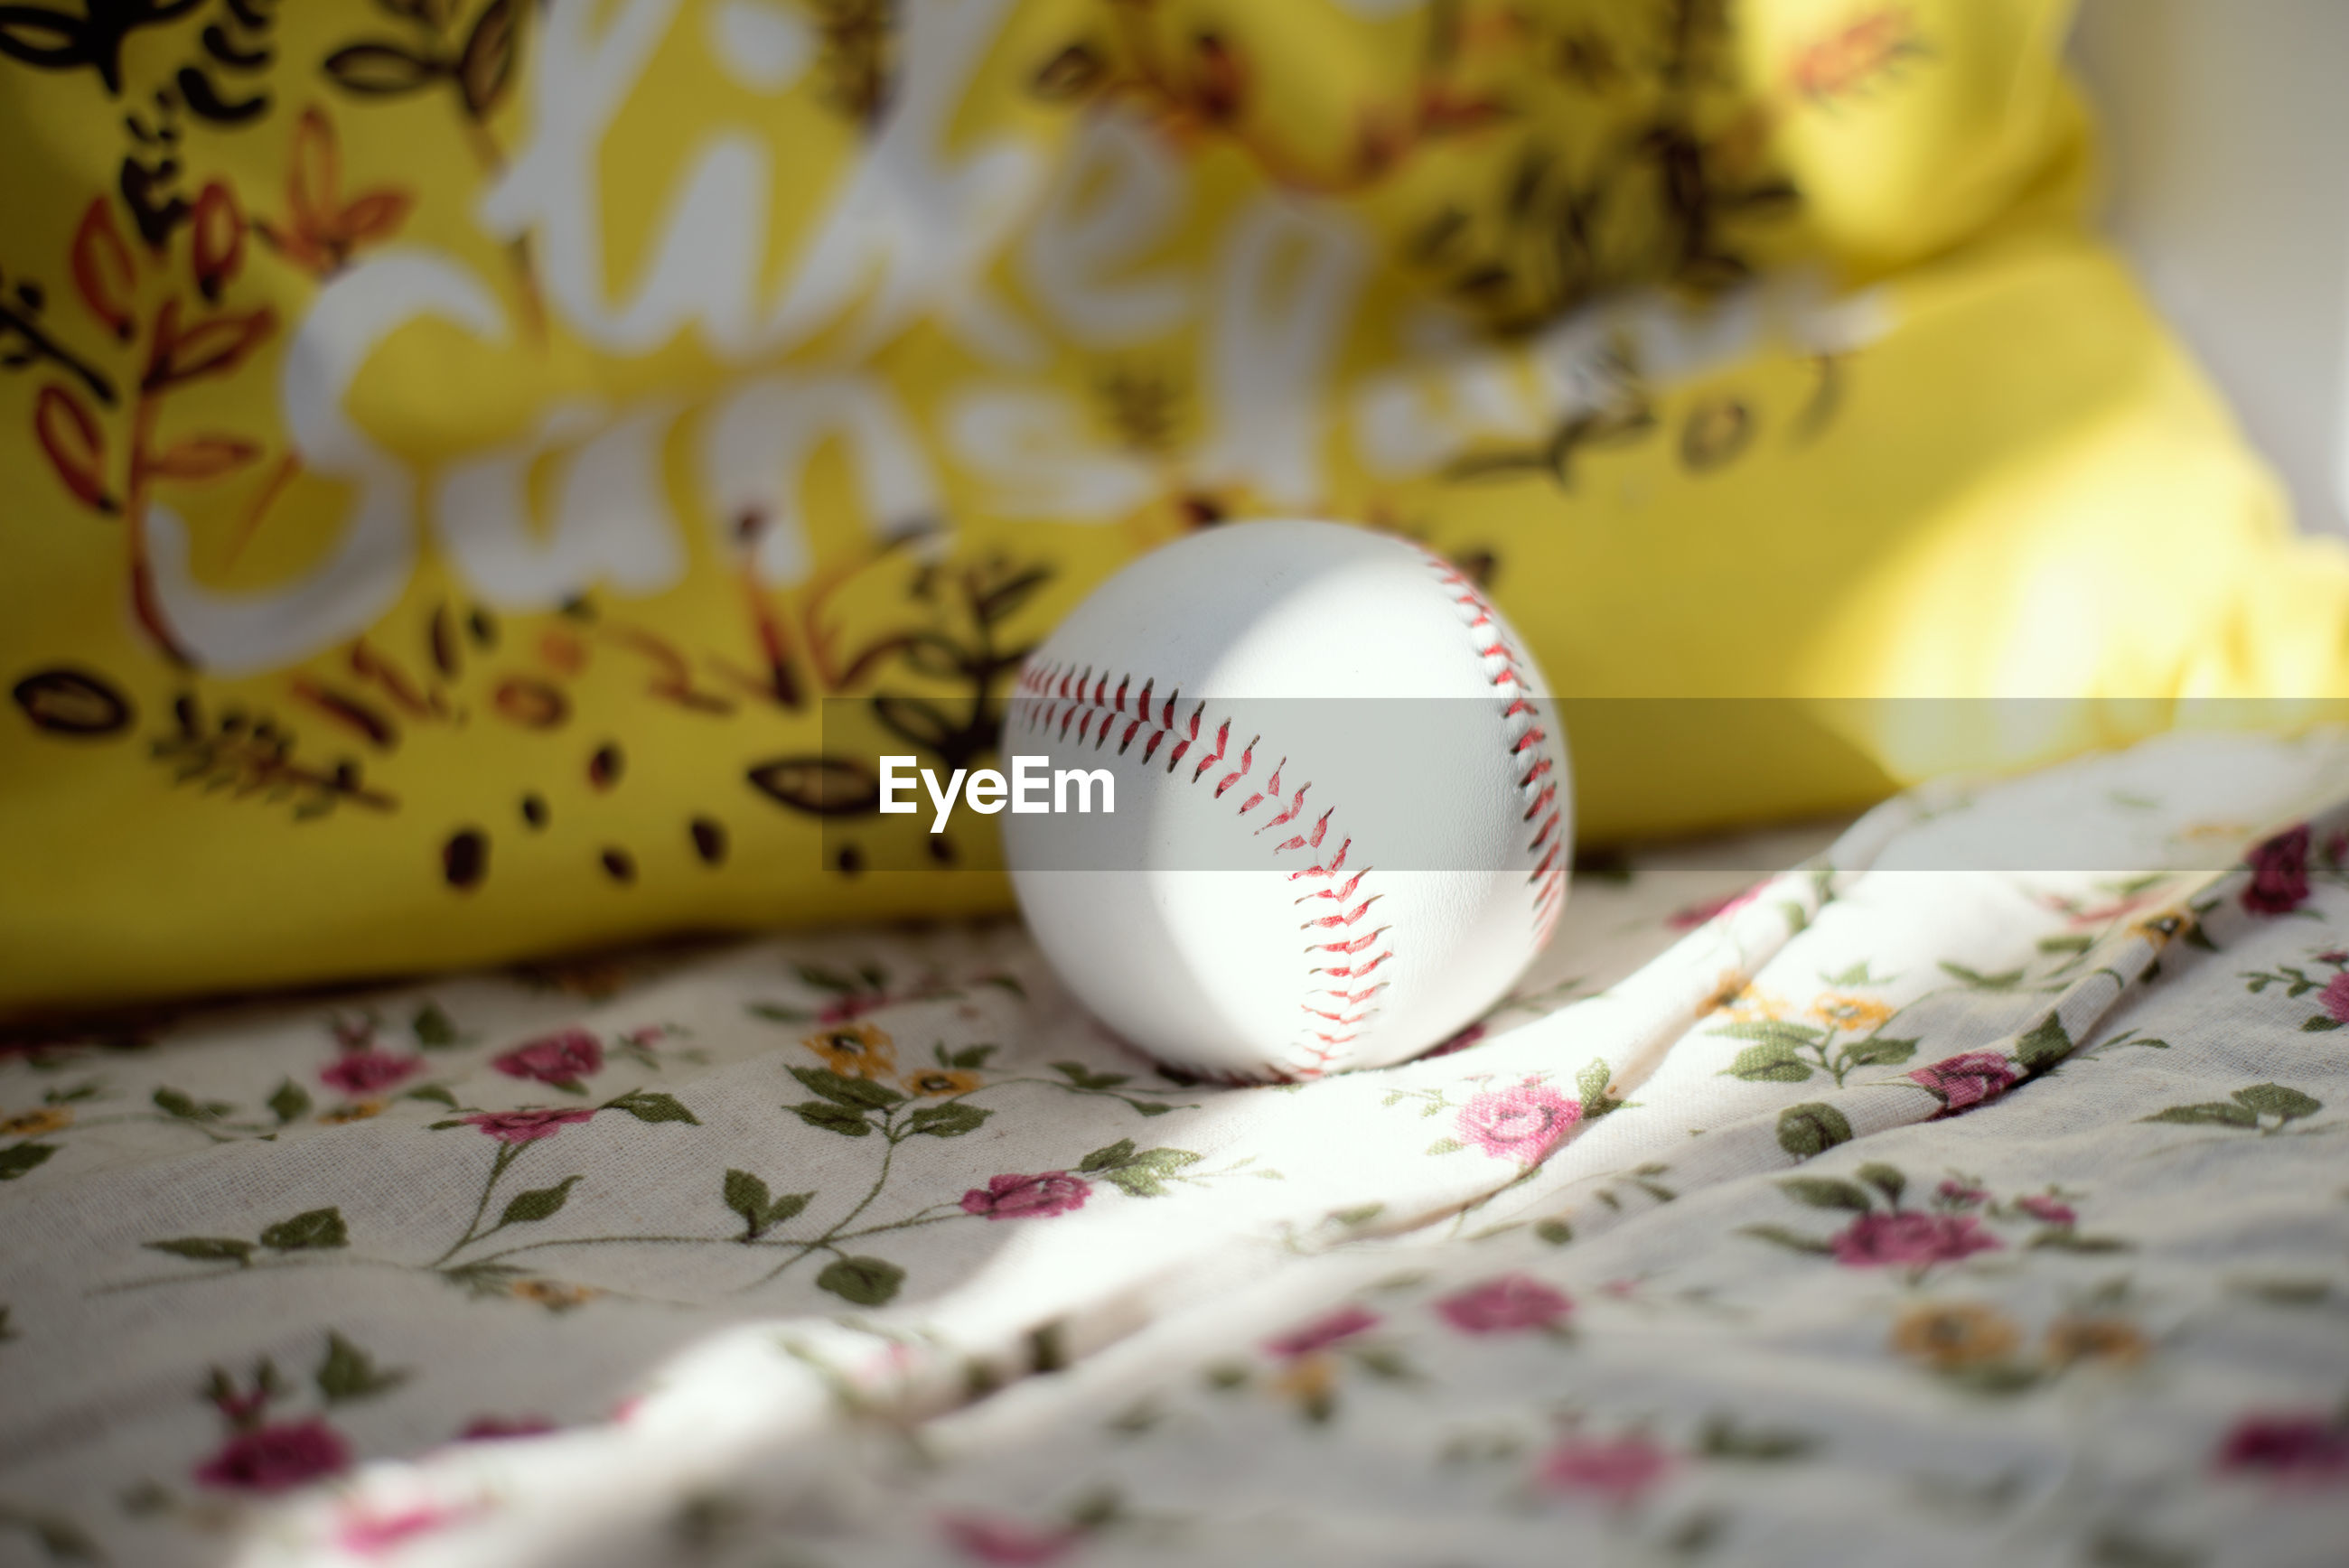 baseball, baseball - ball, indoors, selective focus, yellow, sports, no people, pattern, pink, ball, furniture, flower, close-up, floral pattern, bed